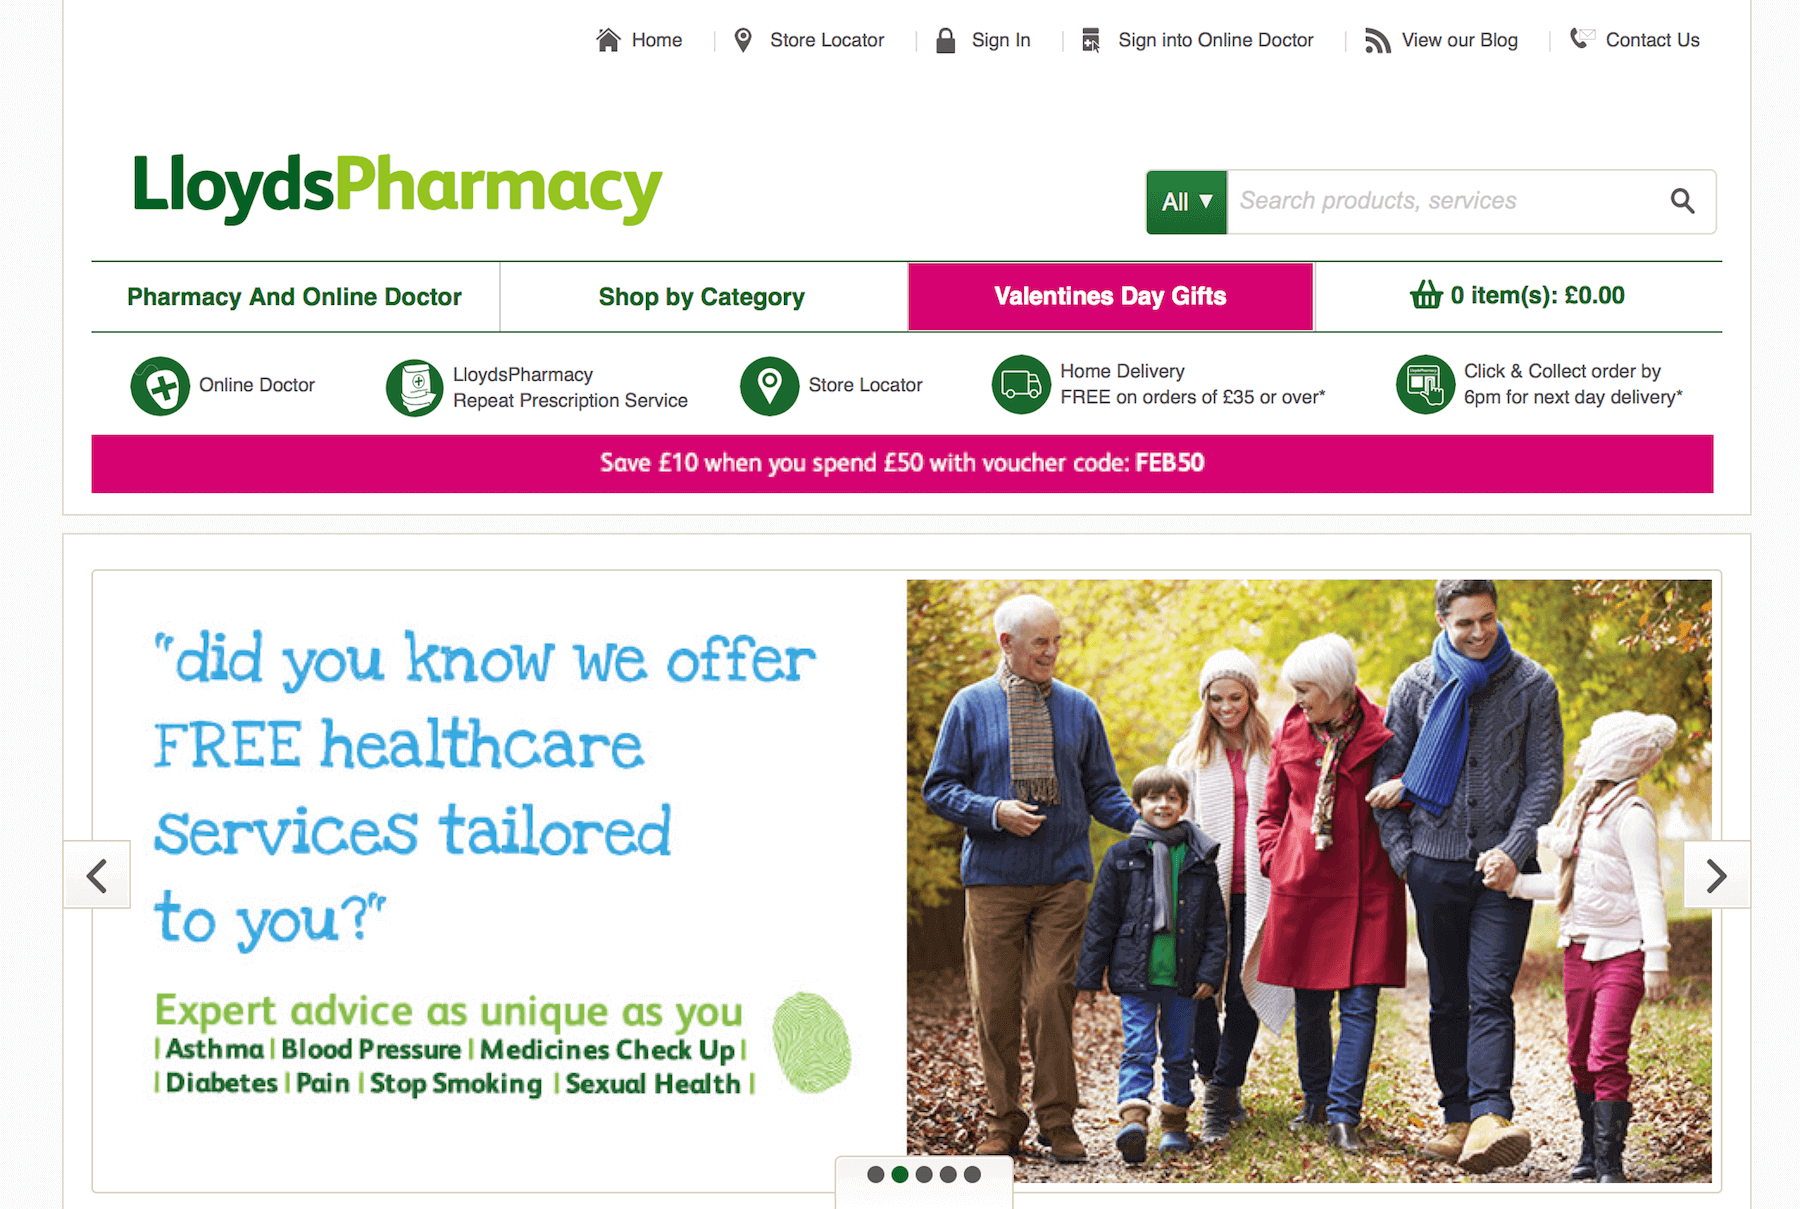 LloydsPharmacy.com Pharmacy Review